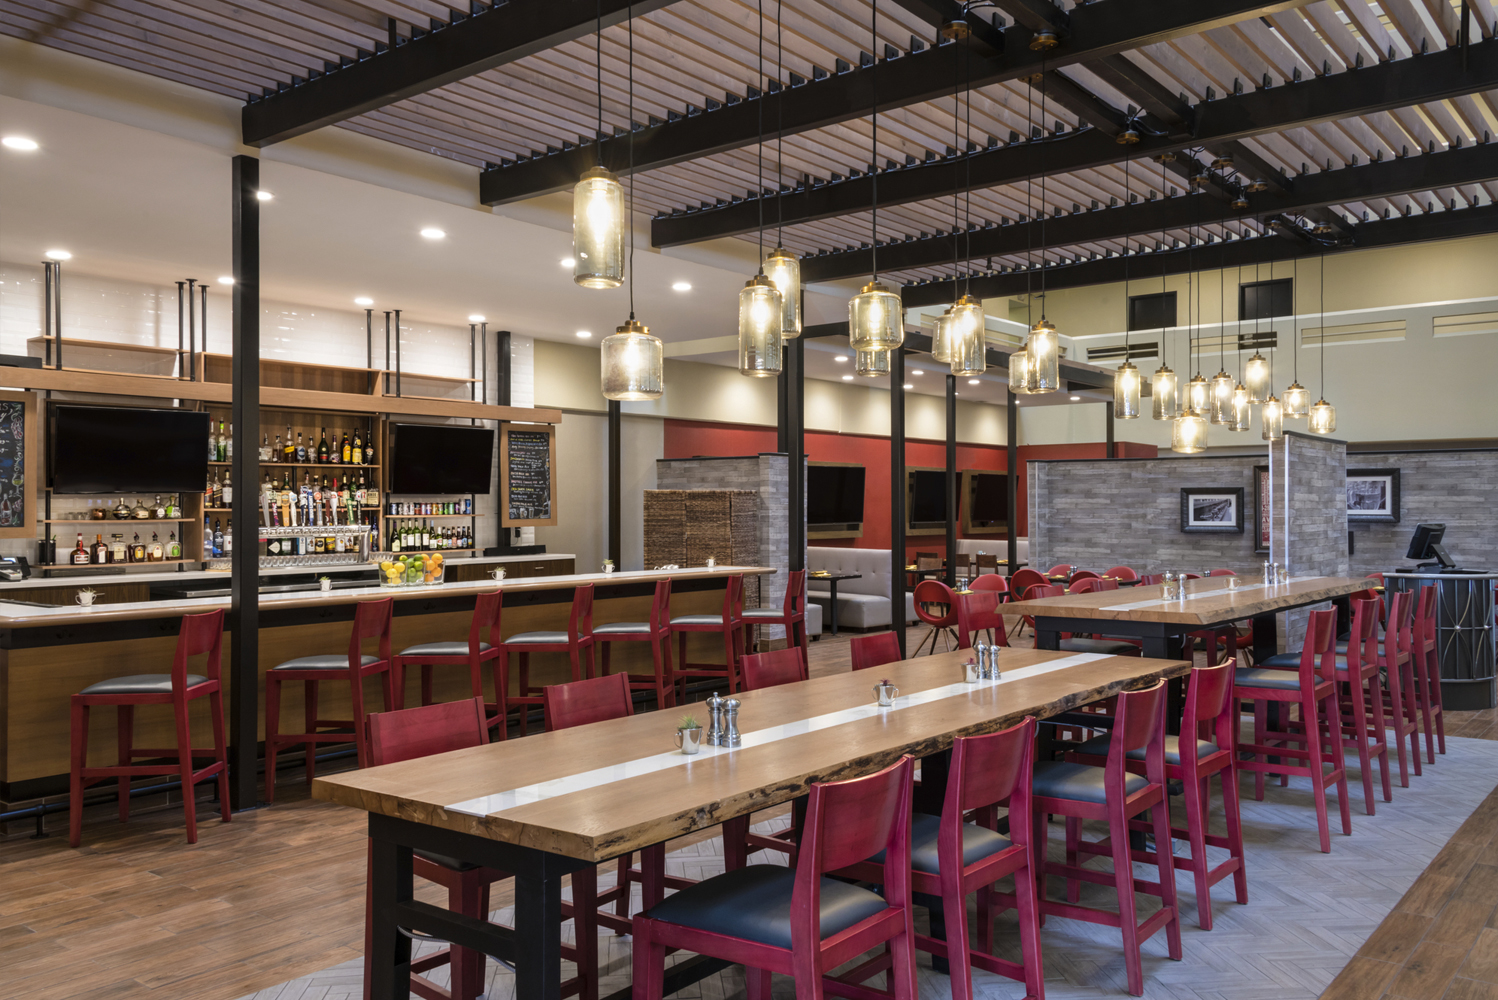 With the renovation, Holiday Inn Denver East – Stapleton now has a grey and white color scheme accented with orange tones.